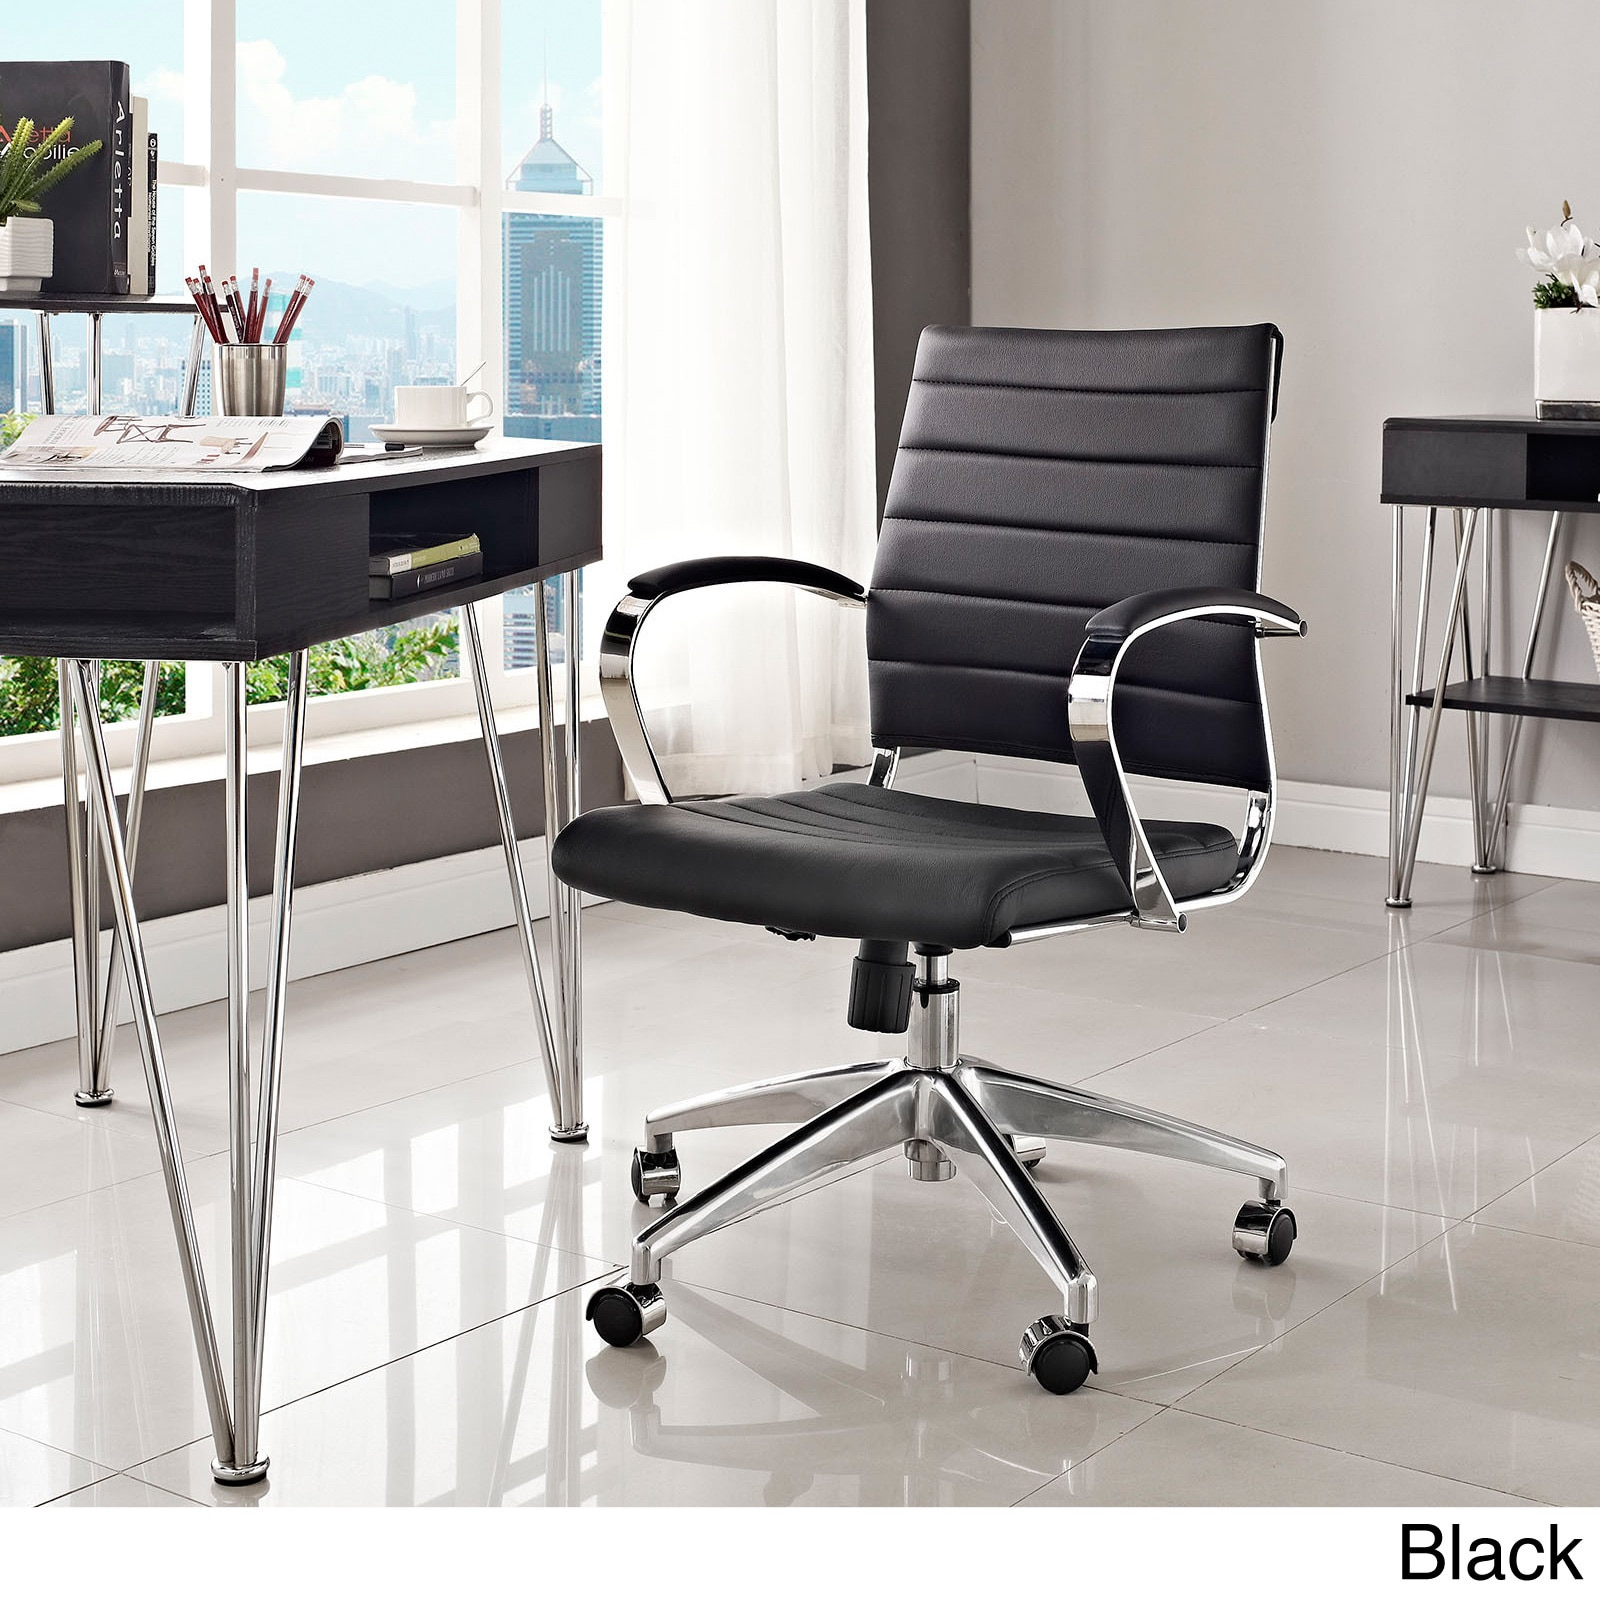 edge base gry eei depot in white gray chair modway office the home p chairs